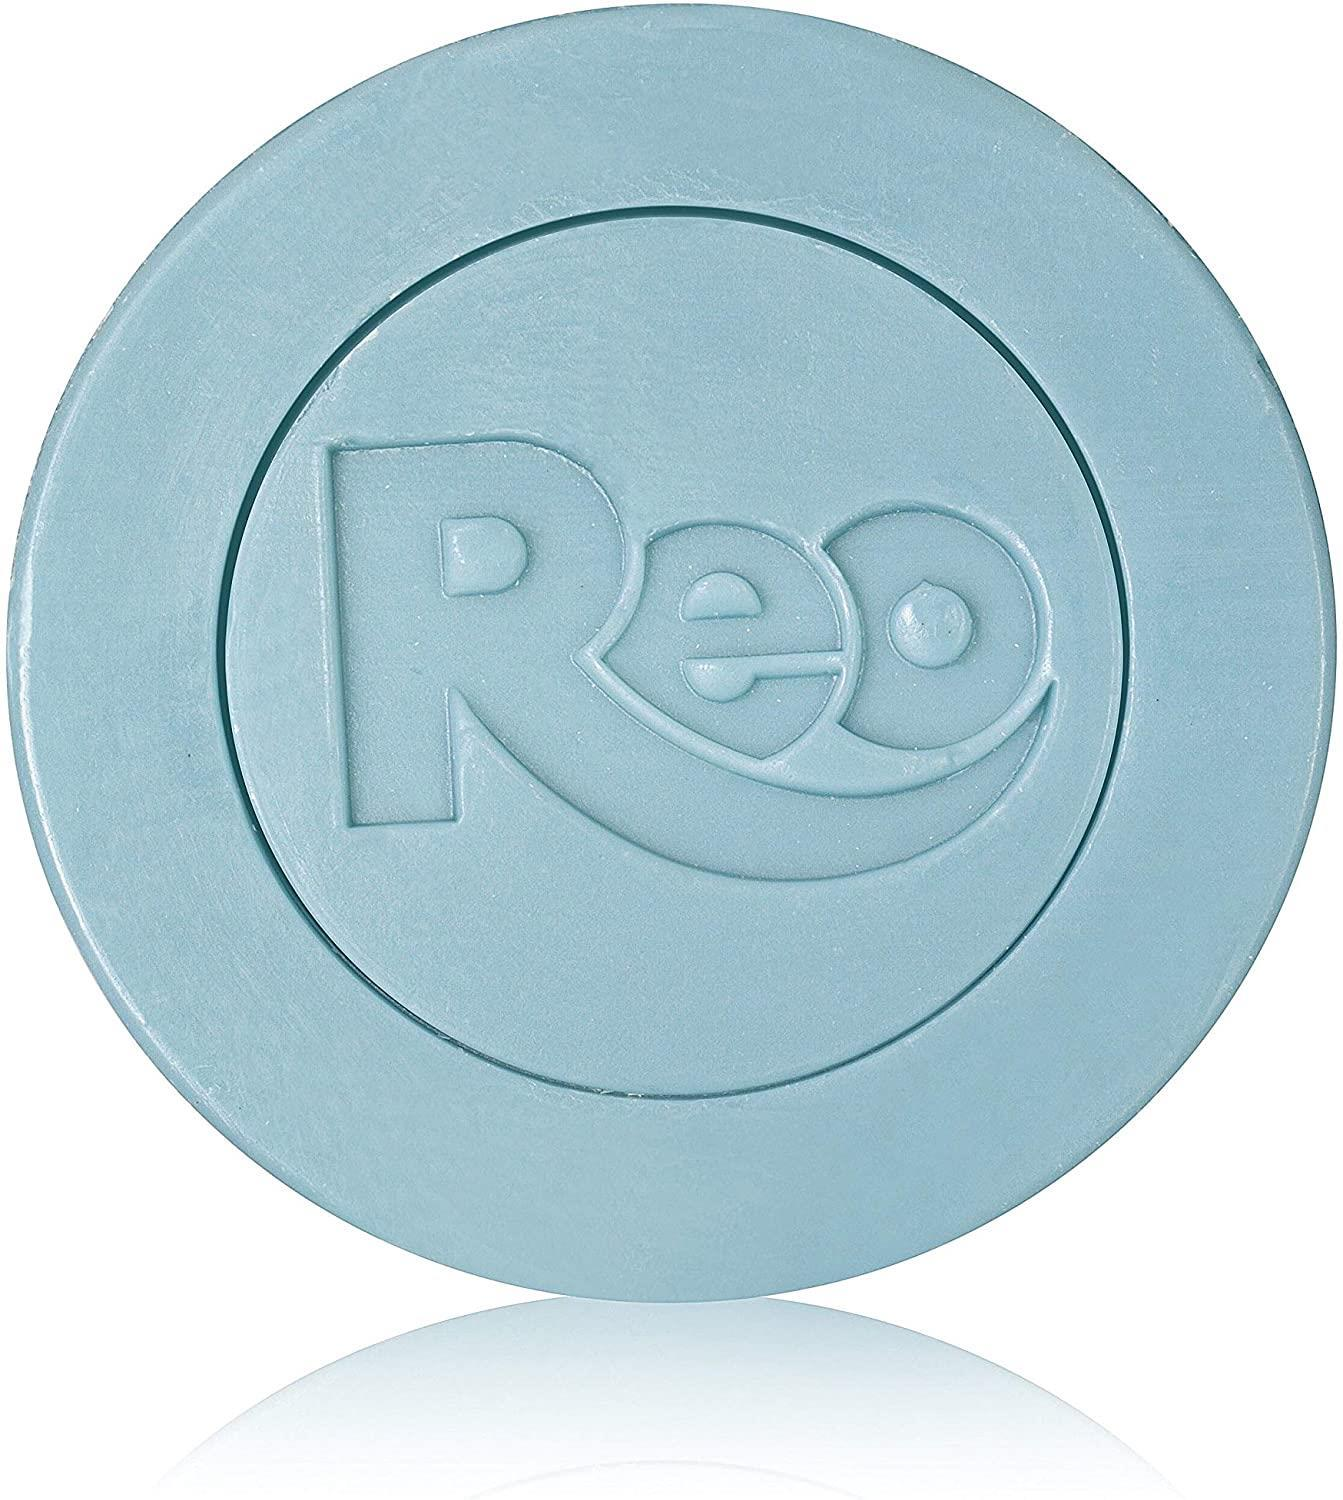 Reo Mini Antiseptic Travel Soap - 30g - Anti-Bacterial Cleanser (Hotel Size)